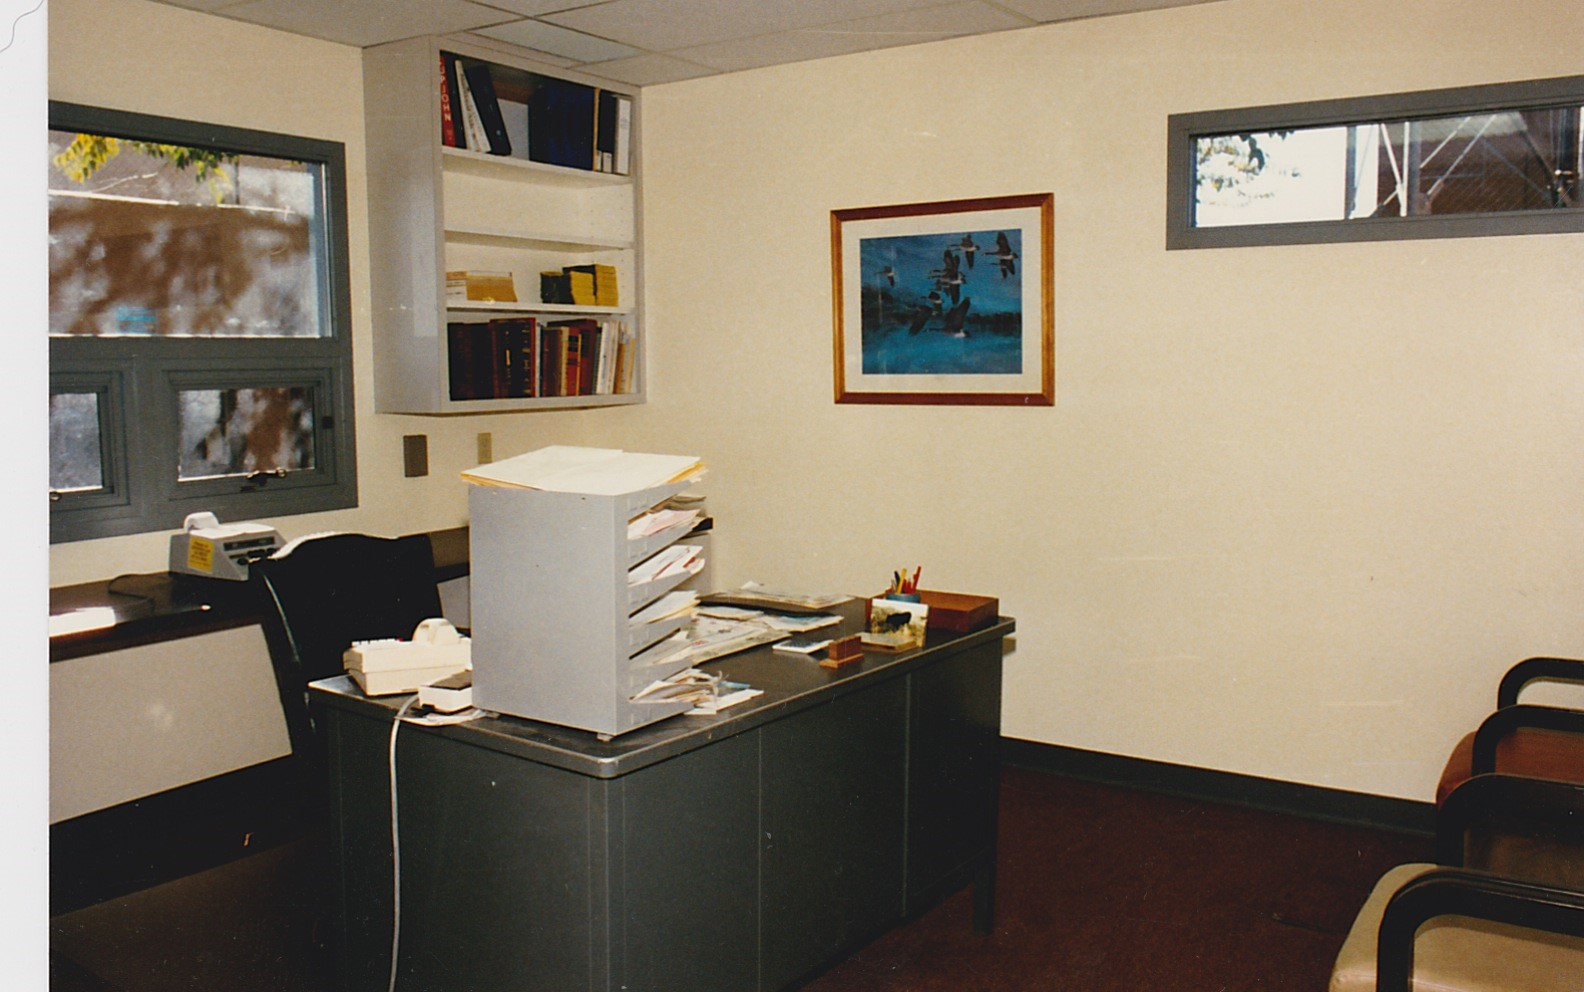 Tom, Mike, and Kathy's office